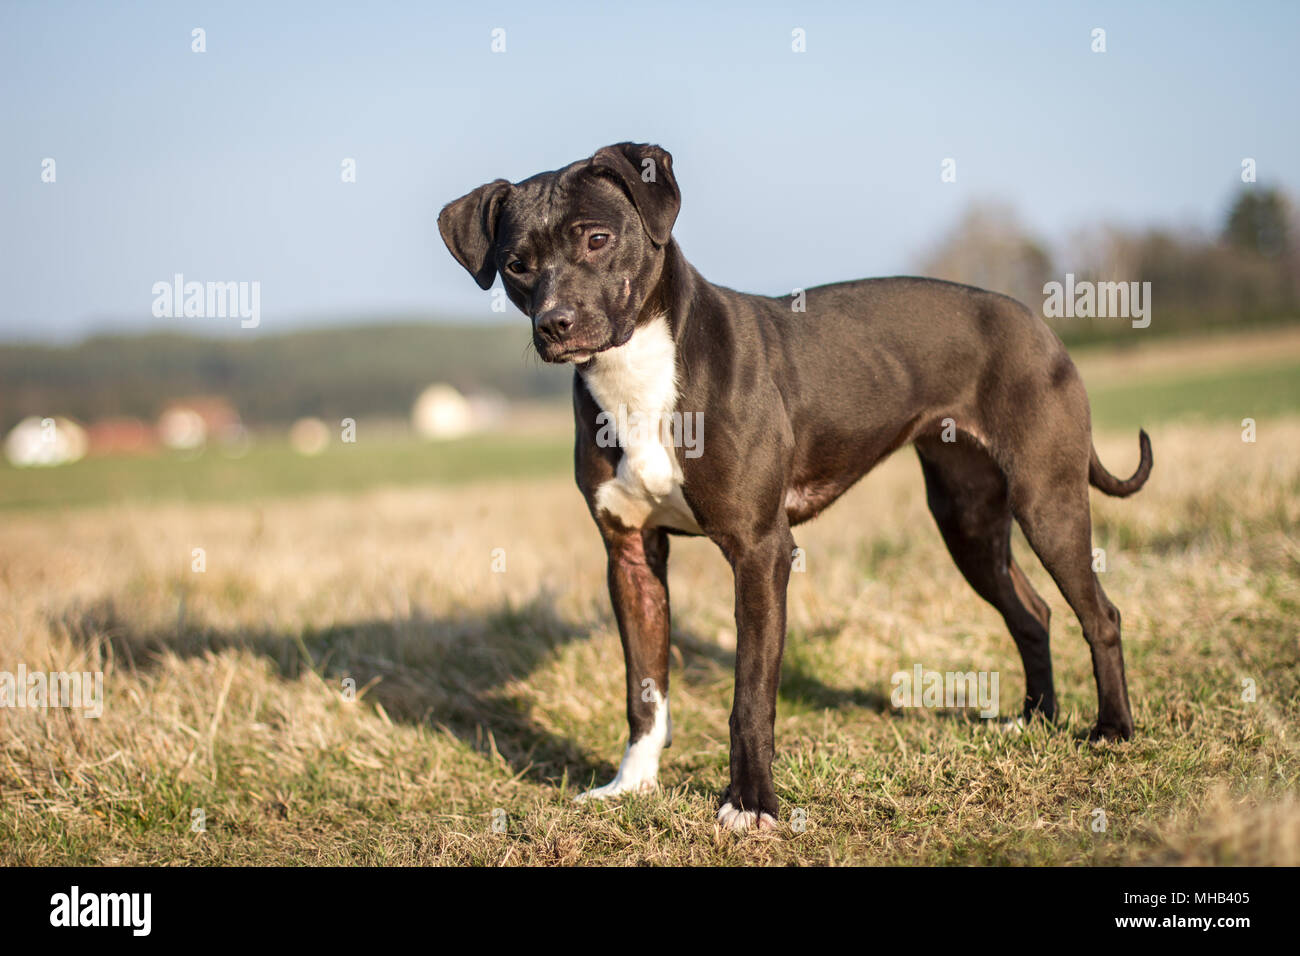 Adorable black young Pit Bull dog standing on a field - Stock Image